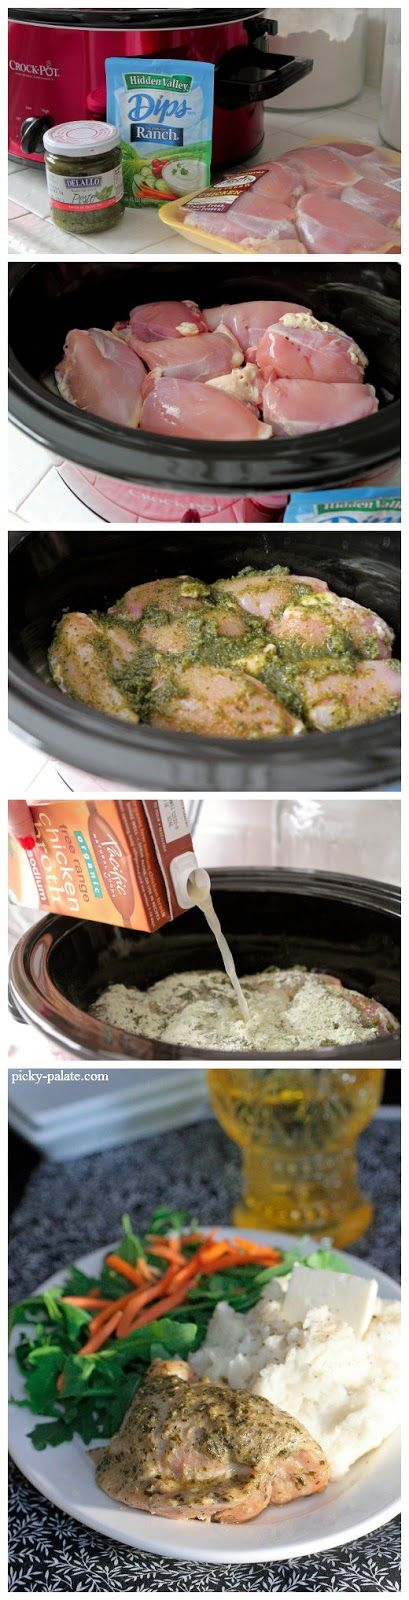 Pesto Ranch Crock Pot Chicken Thighs | Favorite Recipes | Pinterest